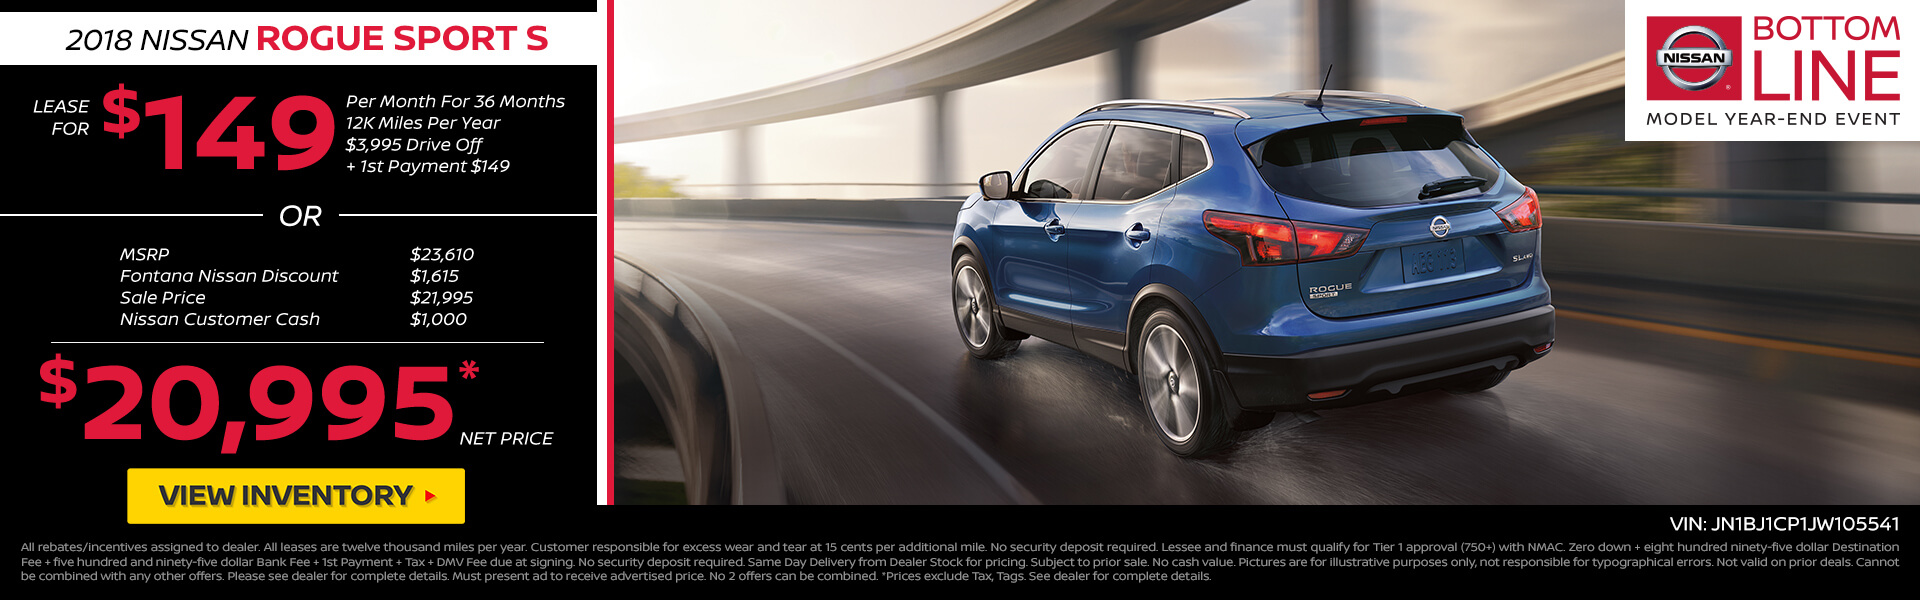 Nissan Rogue Sport $149 Lease or $20,995 Purchase